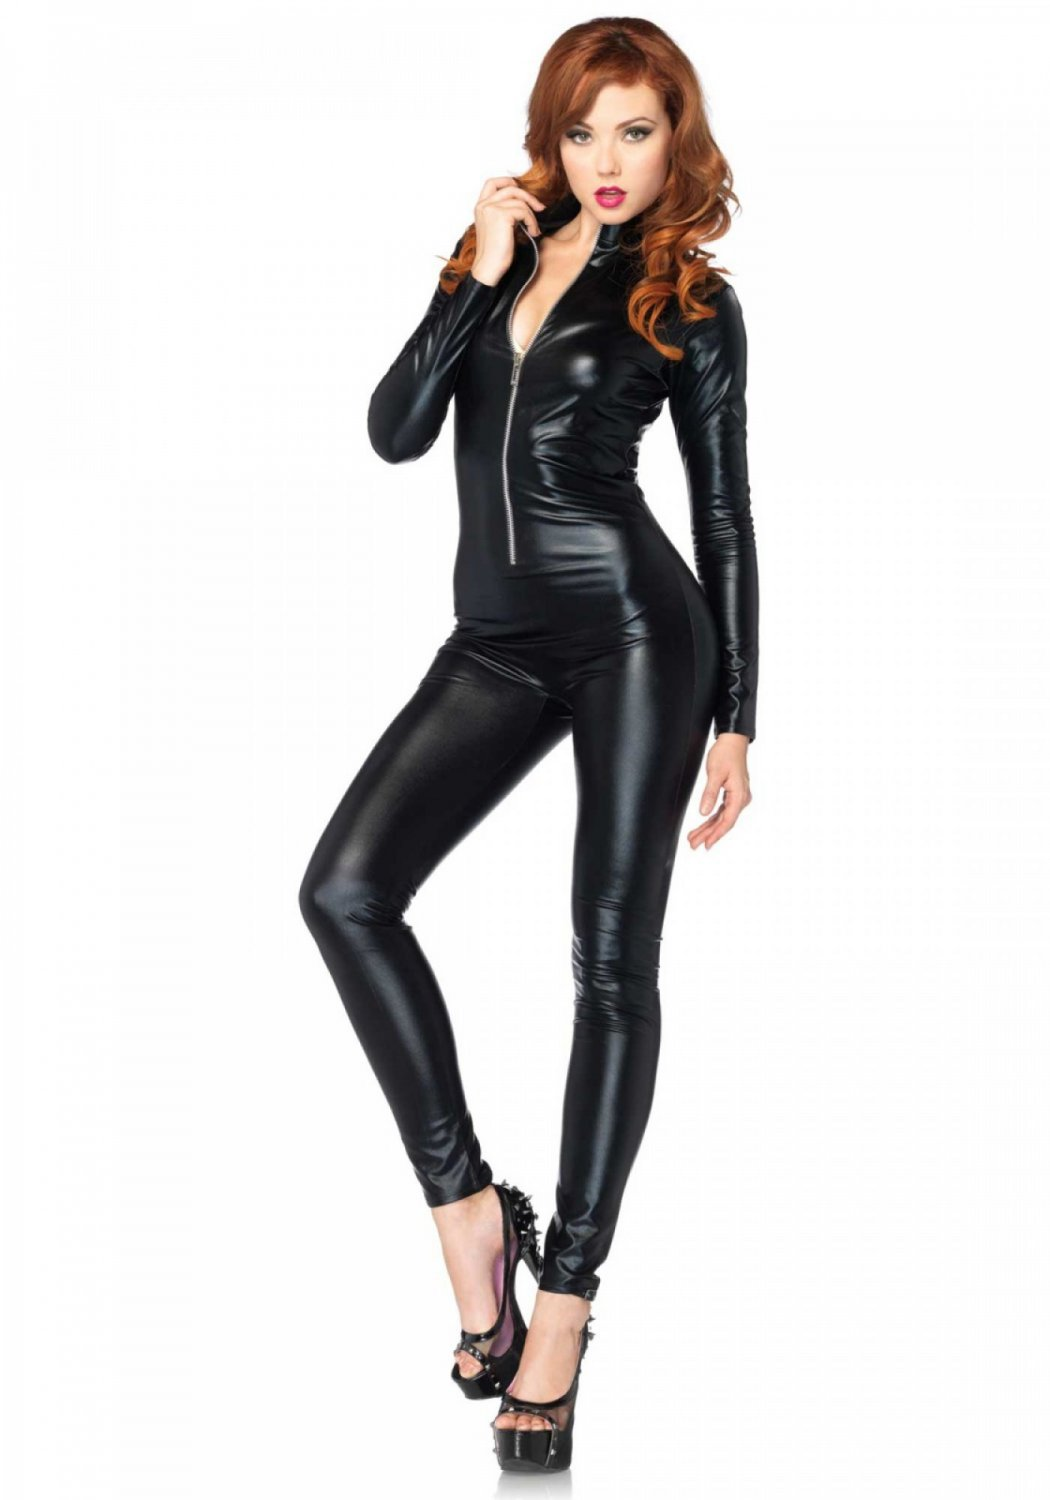 Leg Avenue Wetlook Catsuit Size S